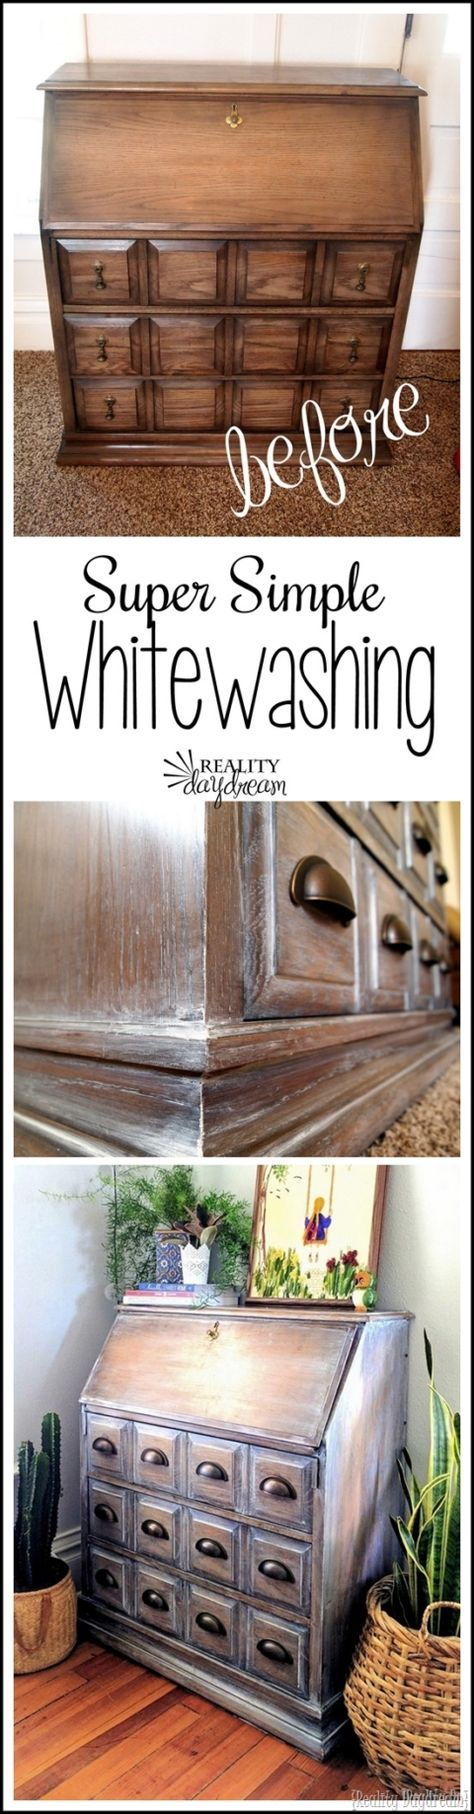 Whitewashing Furniture   Super Simple Tutorial! {Reality Daydream}